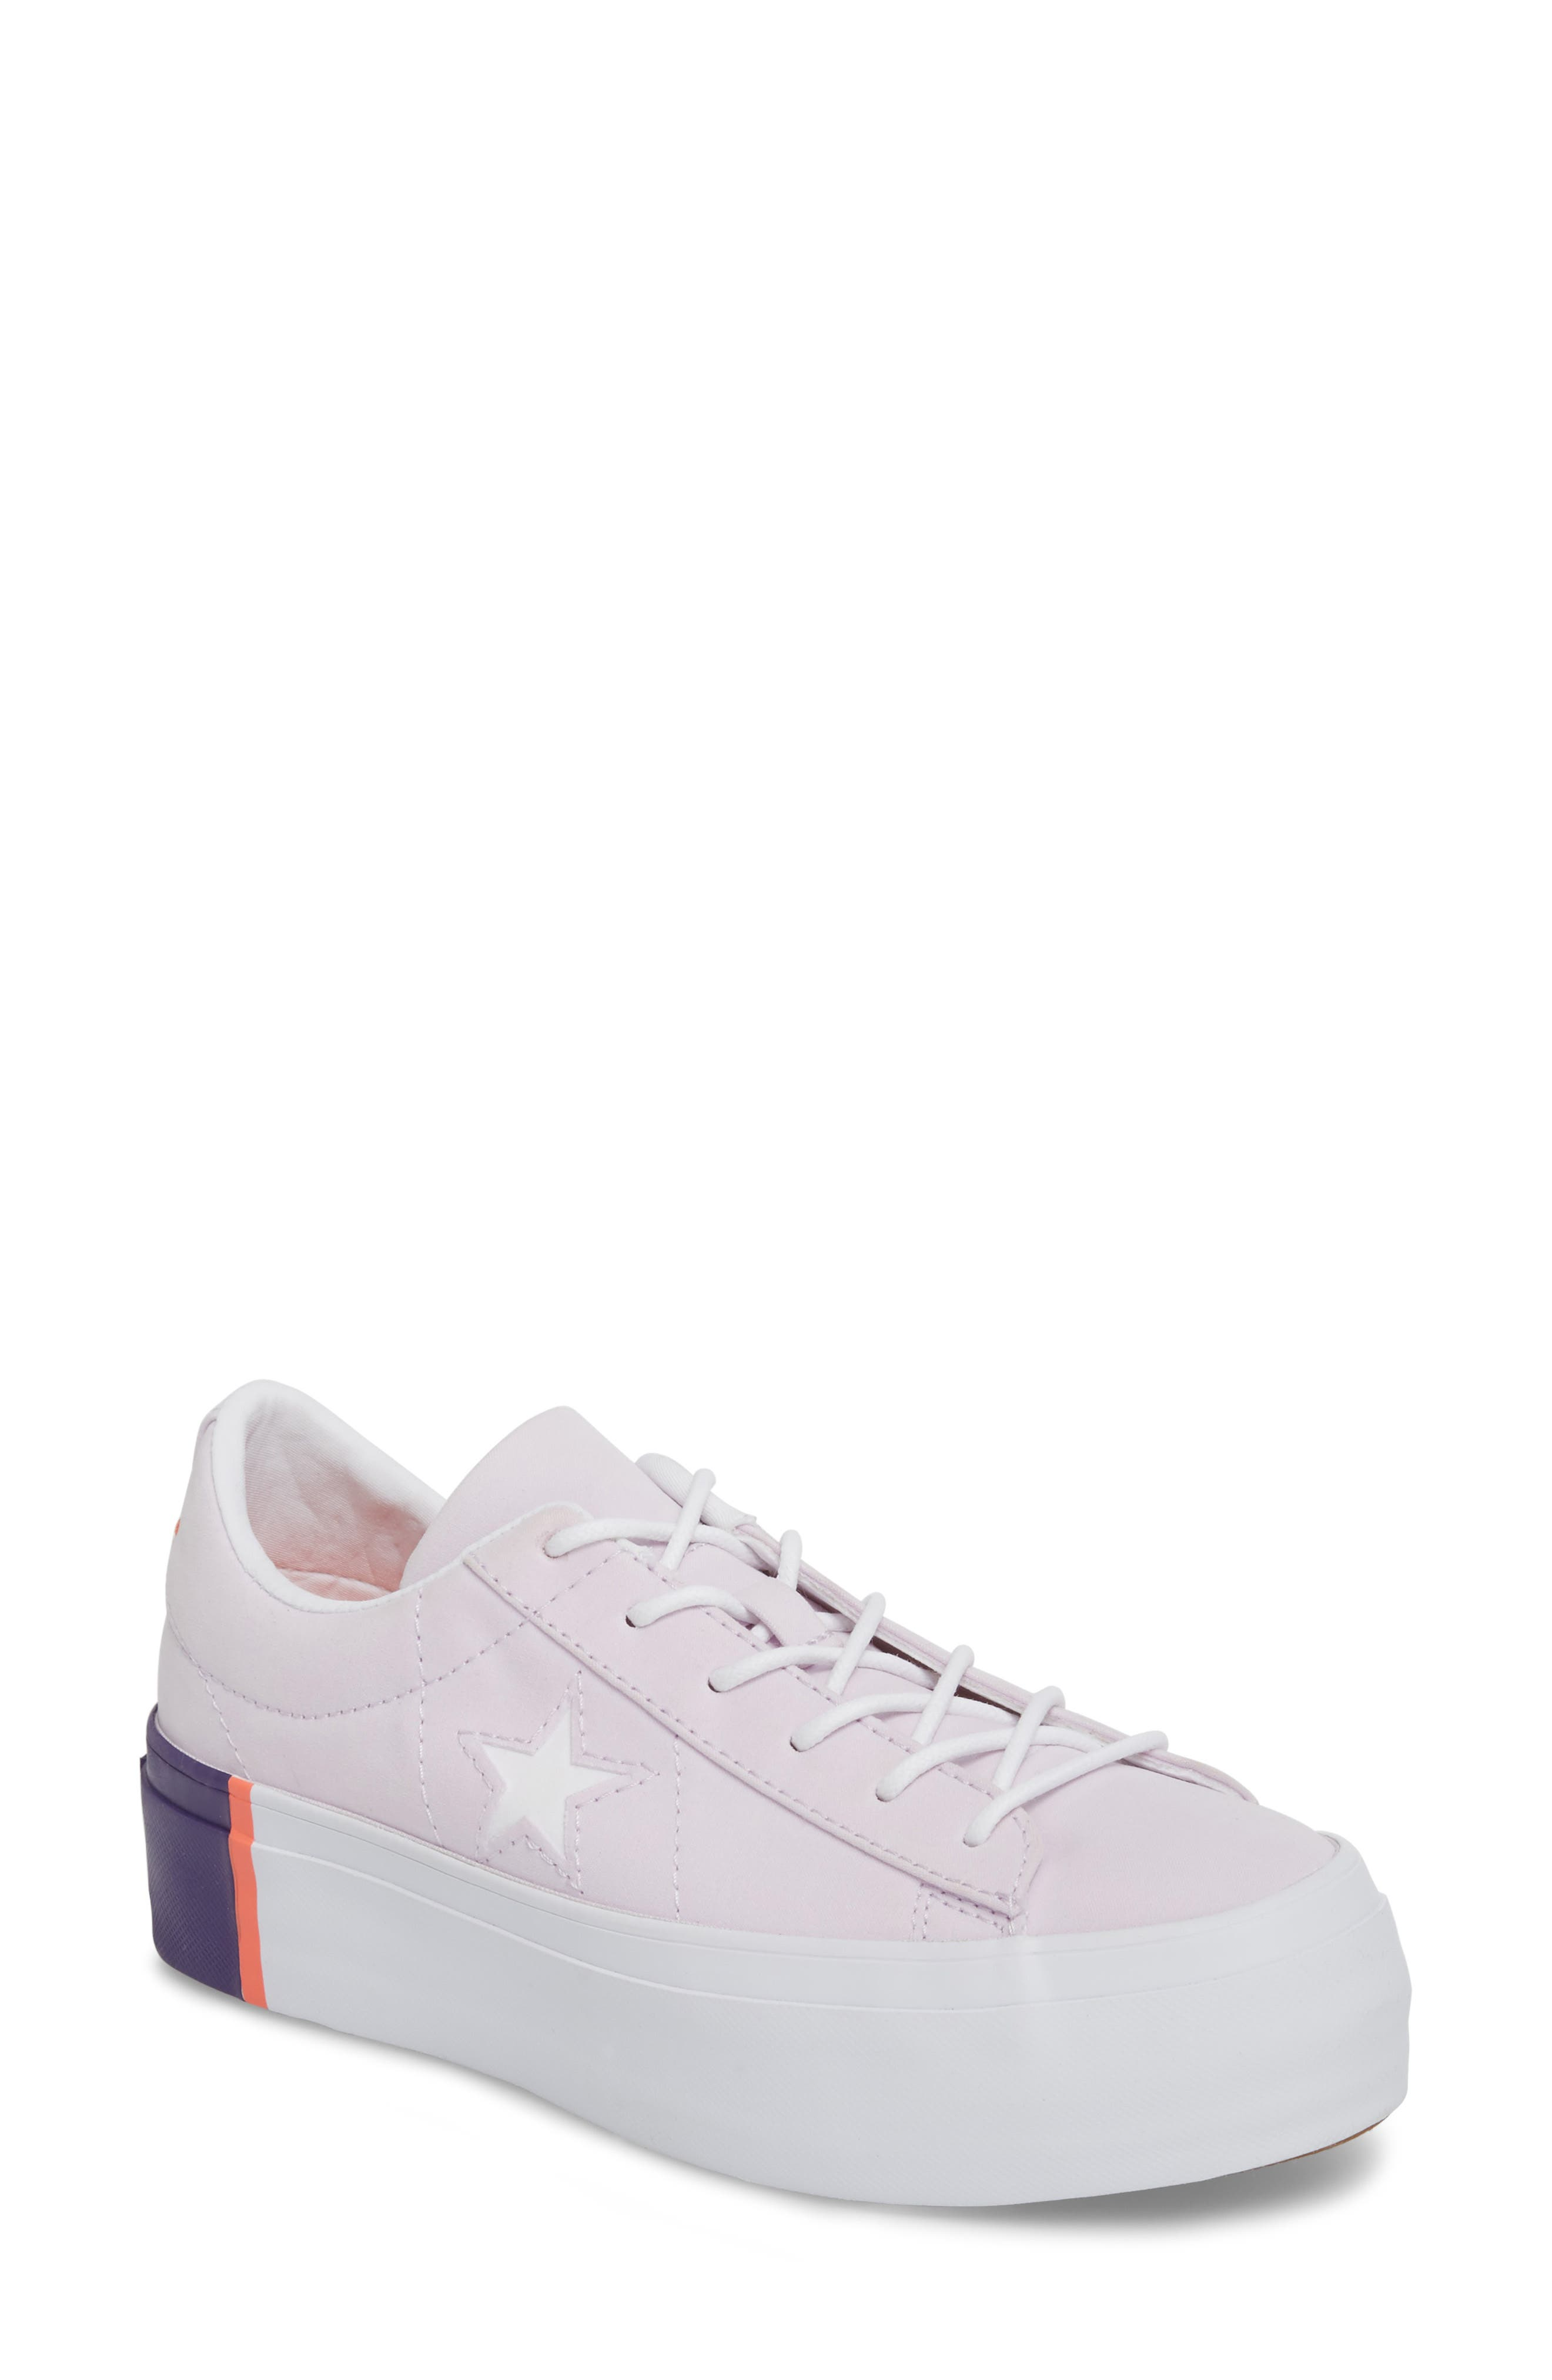 Chuck Taylor<sup>®</sup> All Star<sup>®</sup> One Star Platform Sneaker,                             Main thumbnail 1, color,                             Barely Grape